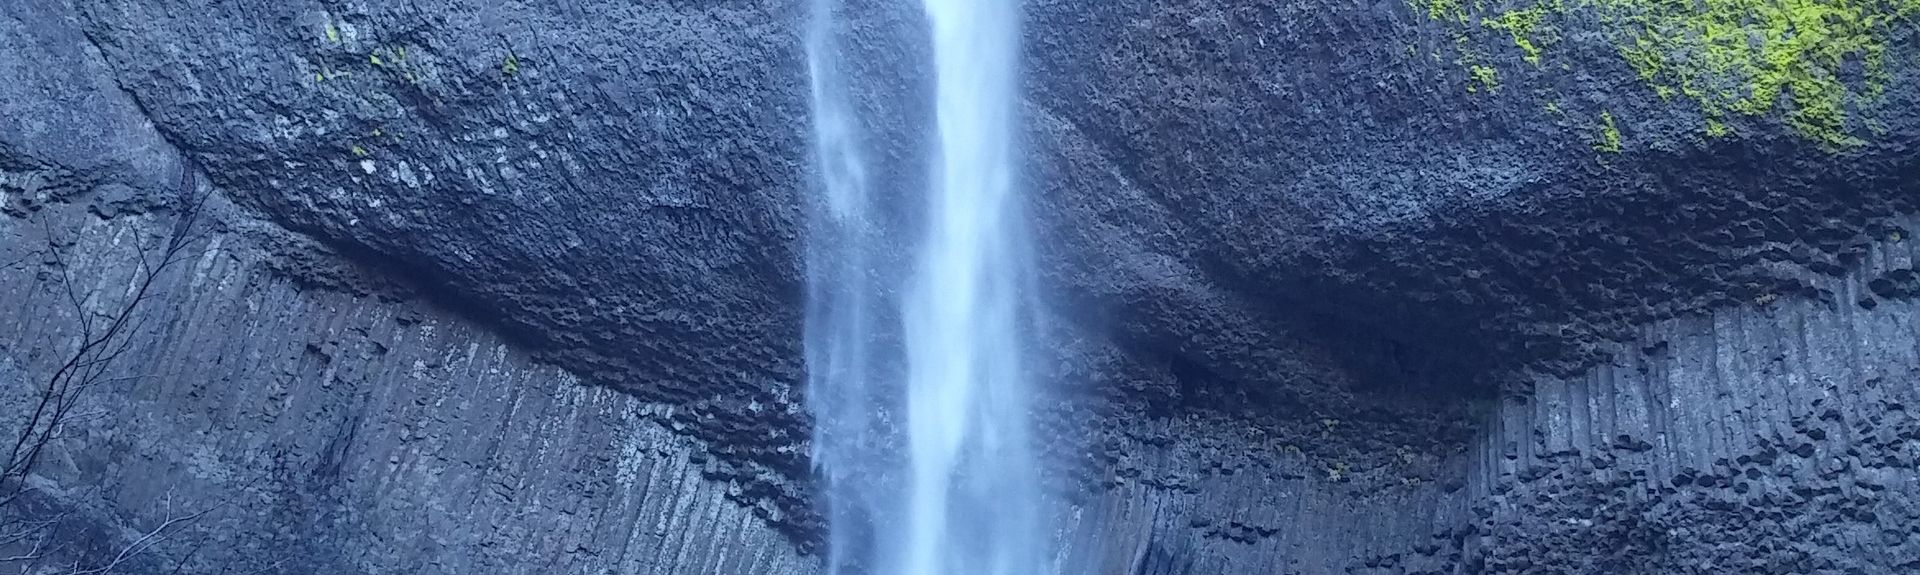 Bridal Veil, Oregón, Estados Unidos